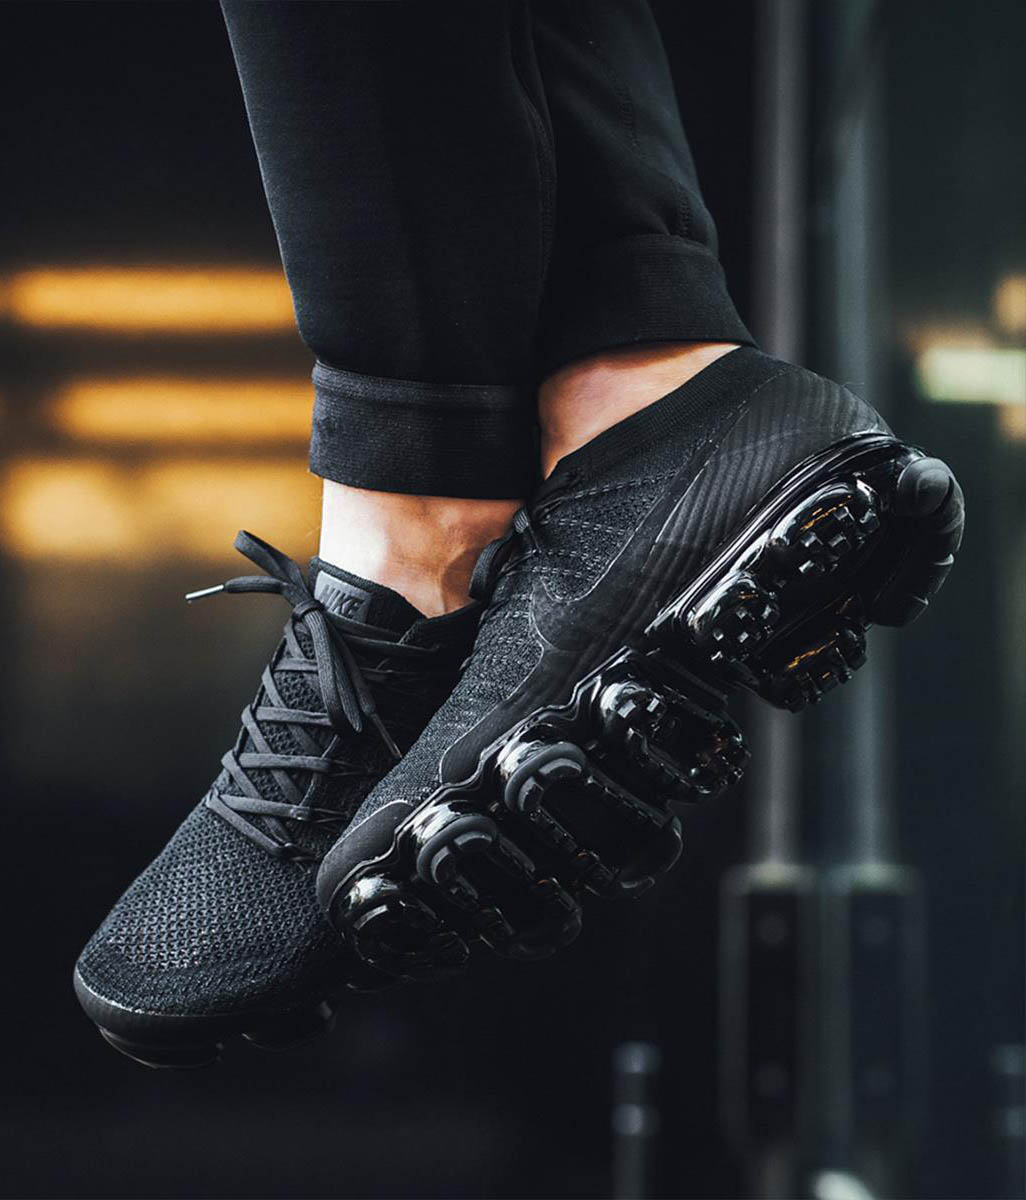 NIKE Vapormax Black Hole